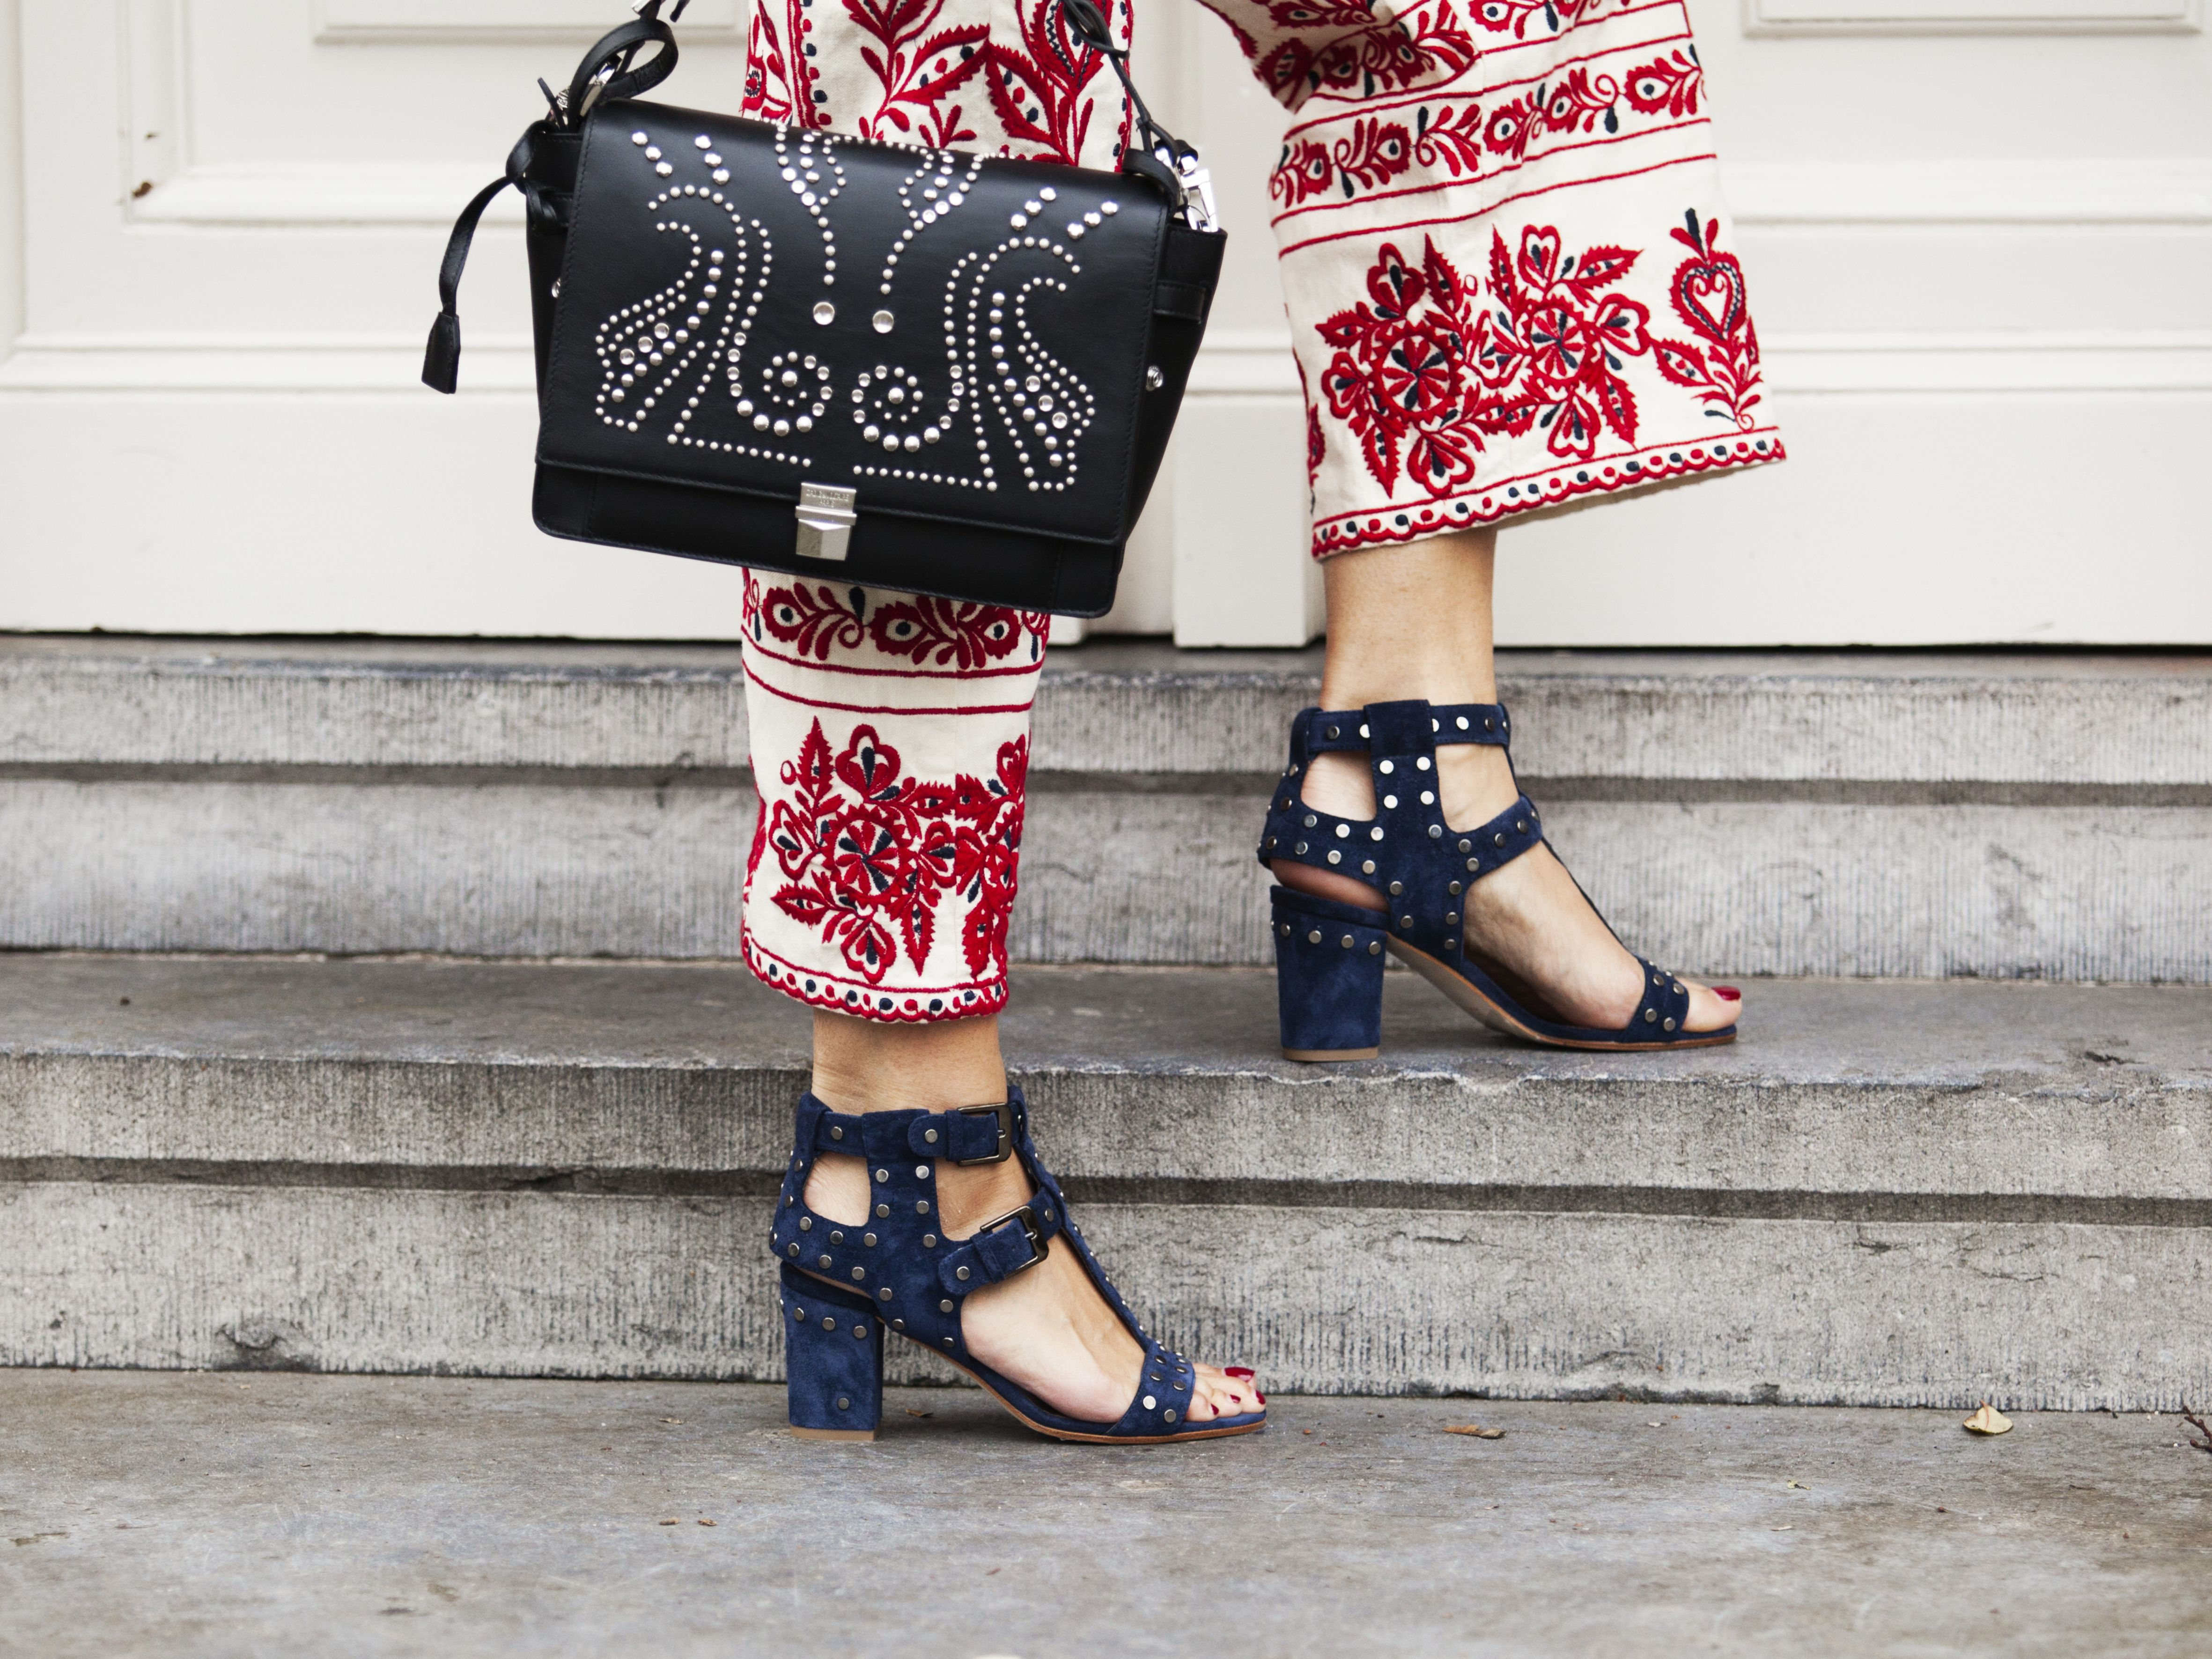 Mayke make a statement shoes Laurence Decade, Zadig et Voltaire handbag